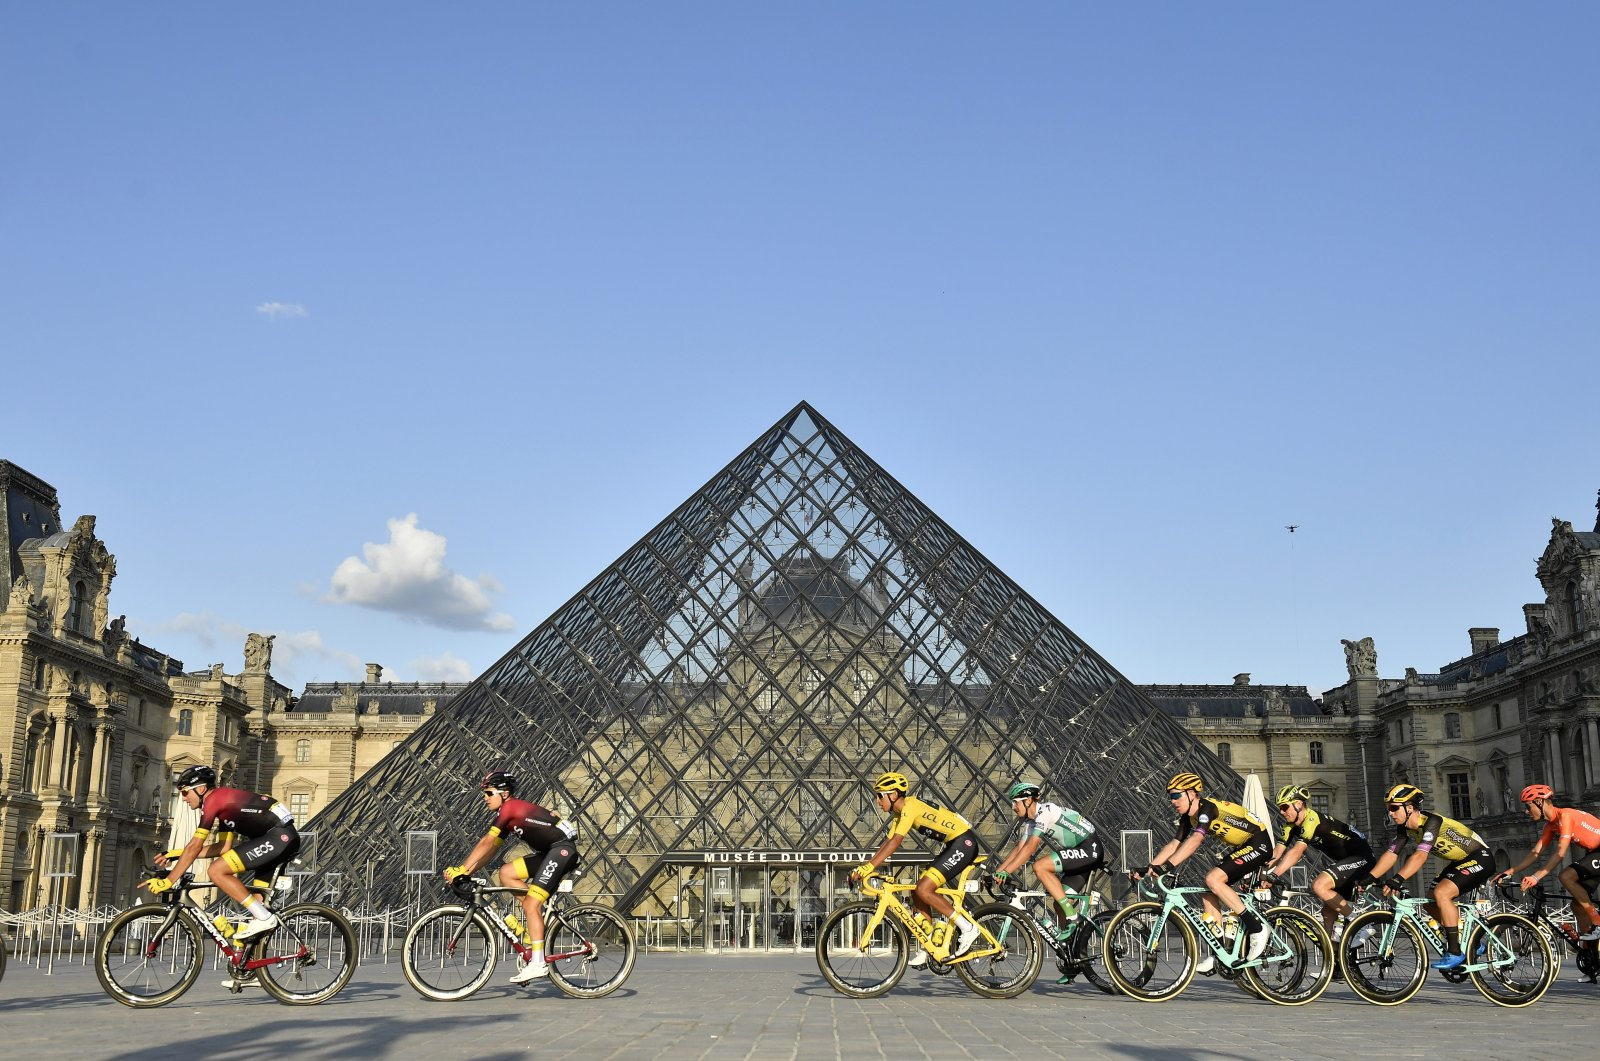 Colombia's Egan Bernal (C) wearing the overall leader's yellow jersey passes by the pyramid of the Louvre museum with the pack during the final stage of the Tour de France cycling race, Paris, France, July 28, 2019. (AP Photo)